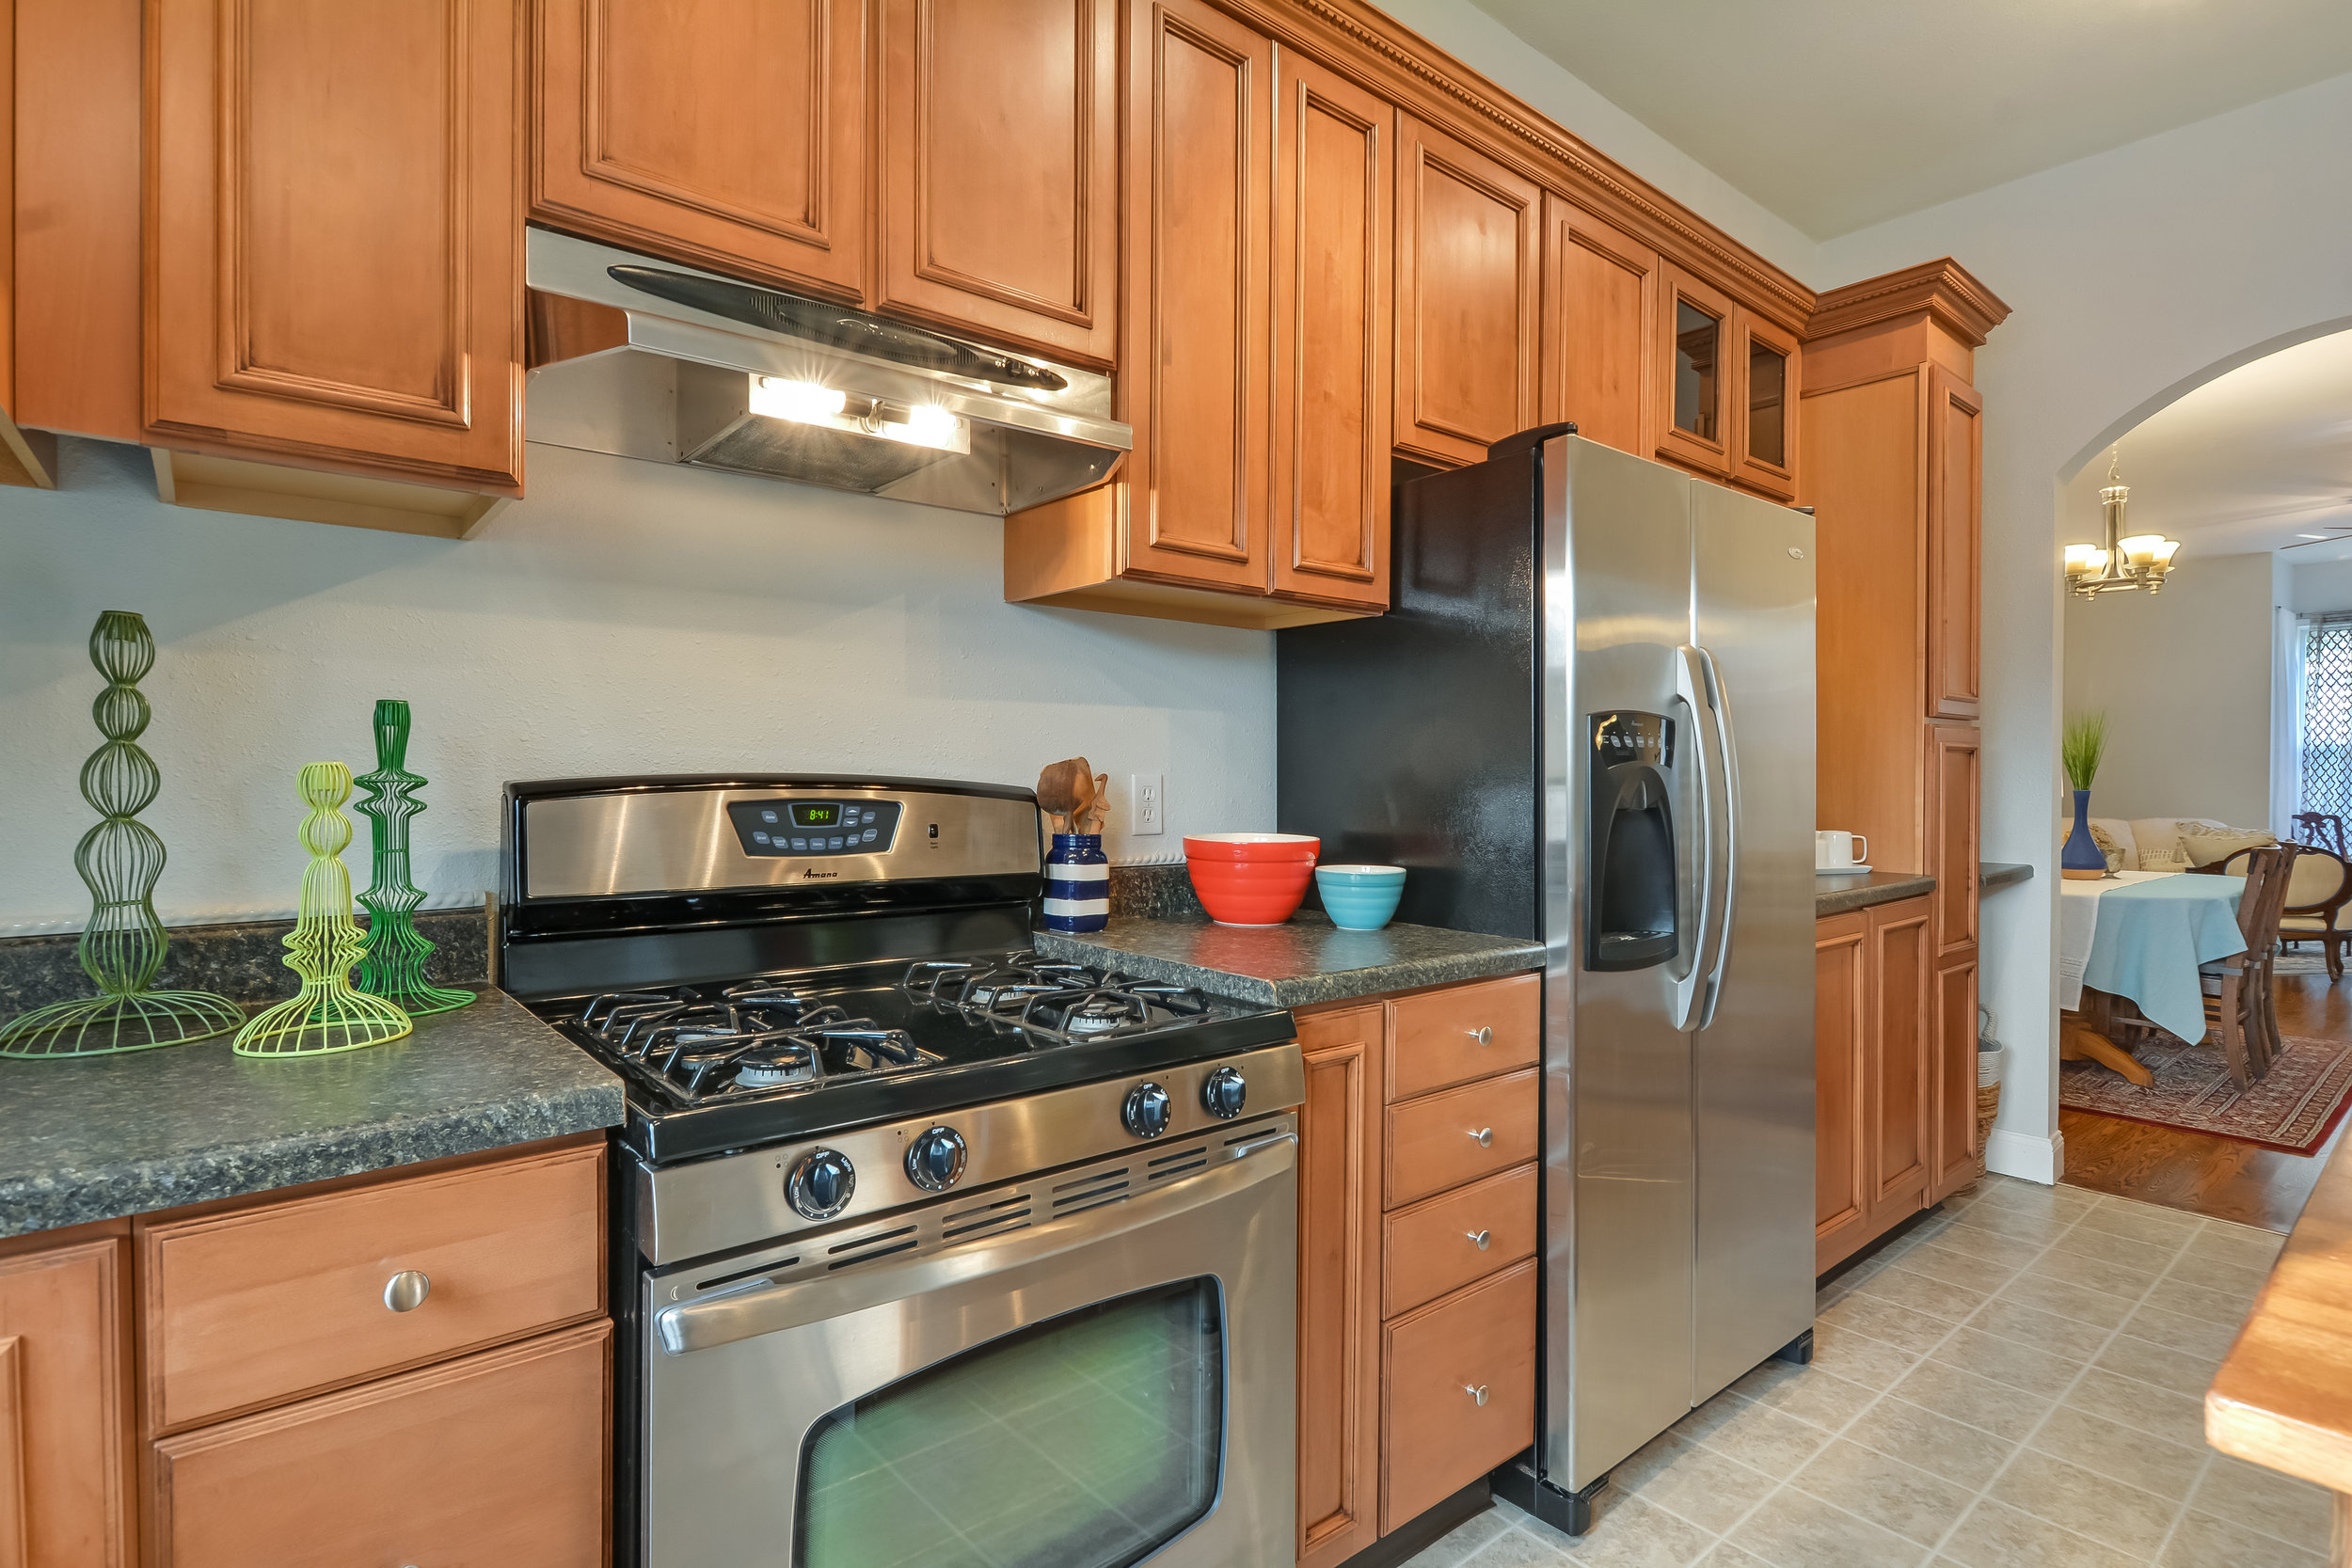 Gas stove, side-by-side refrigerator, and a peek at the glass front display cabinets just beyond the fridge.